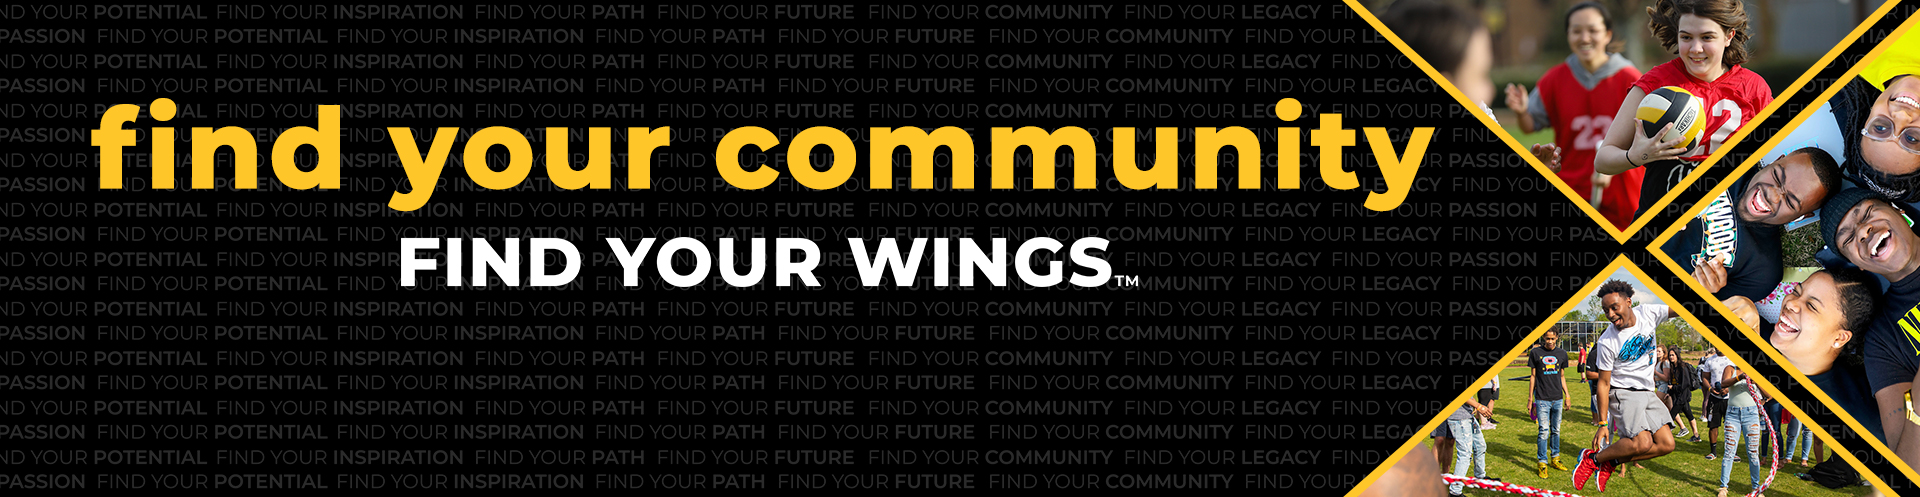 Find your Community. Find your Wings.